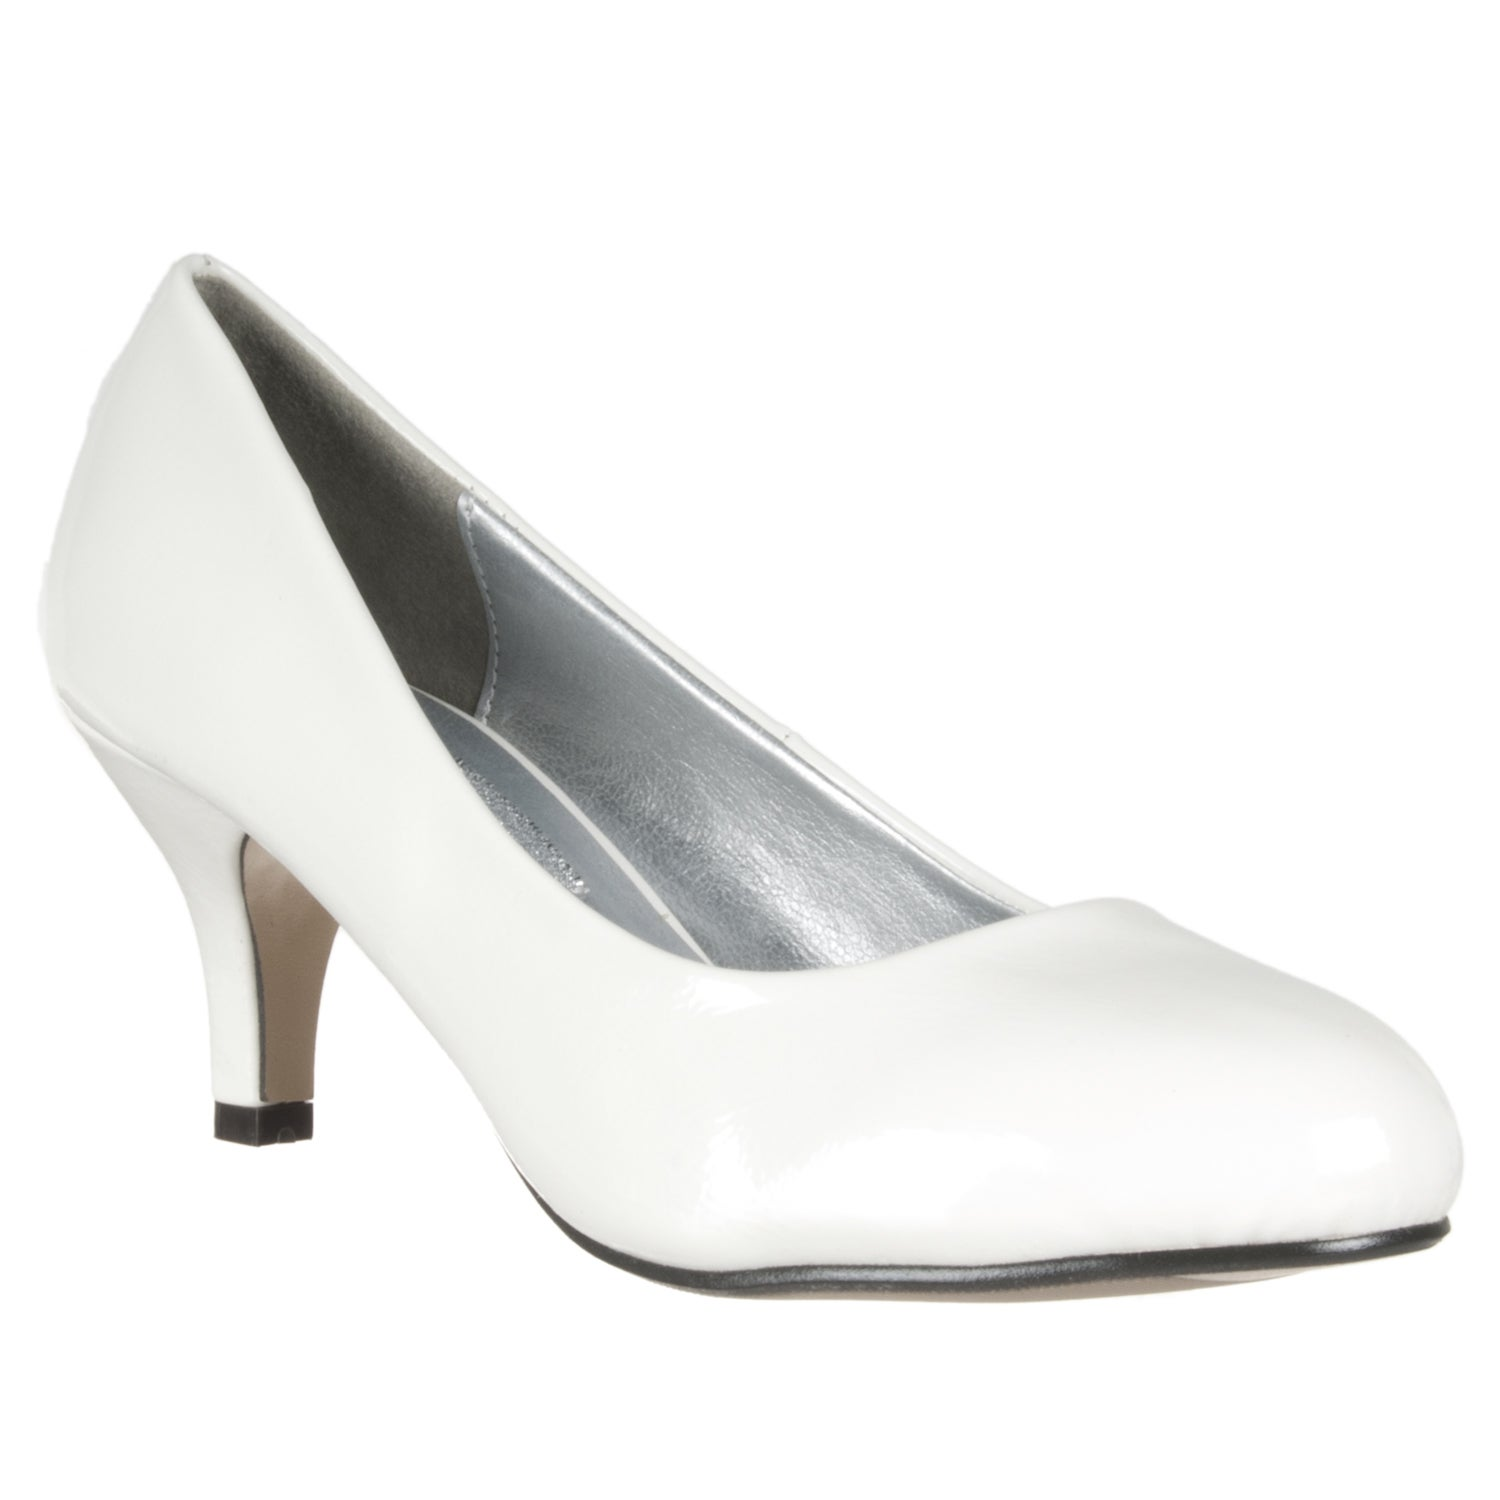 Riverberry Women's White Patent Mid-Heel Pumps - Free Shipping On ...